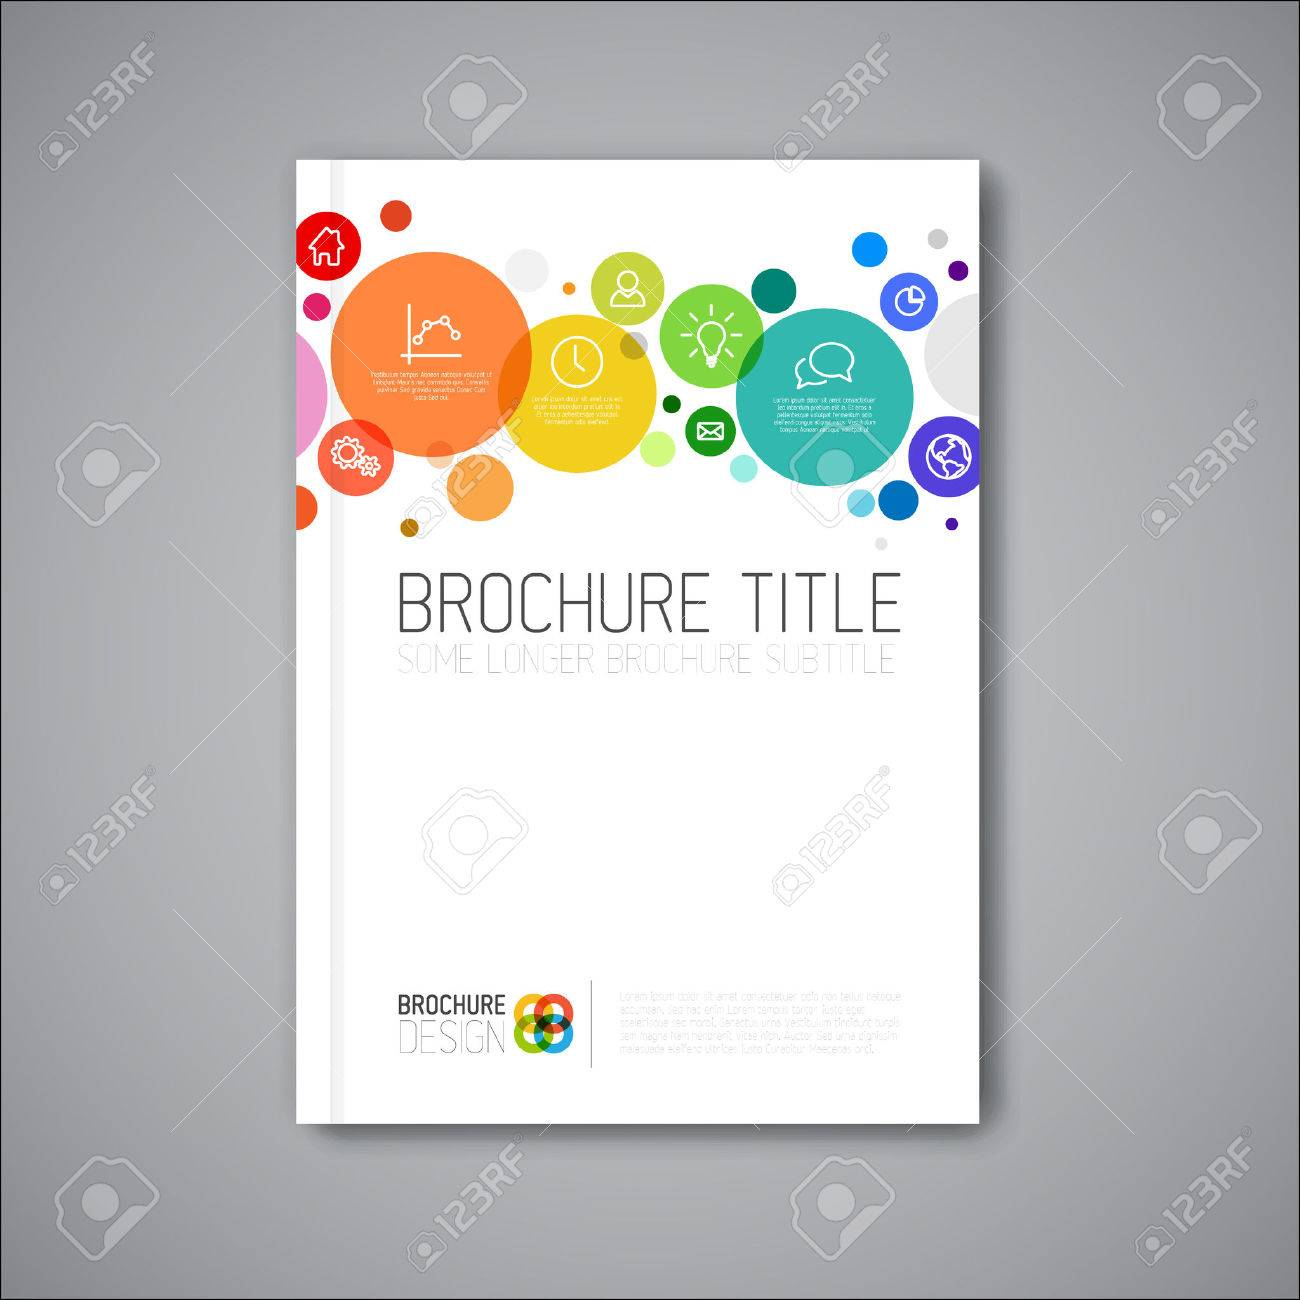 cover page design stock vector illustration and royalty cover page design modern vector abstract brochure book flyer design template